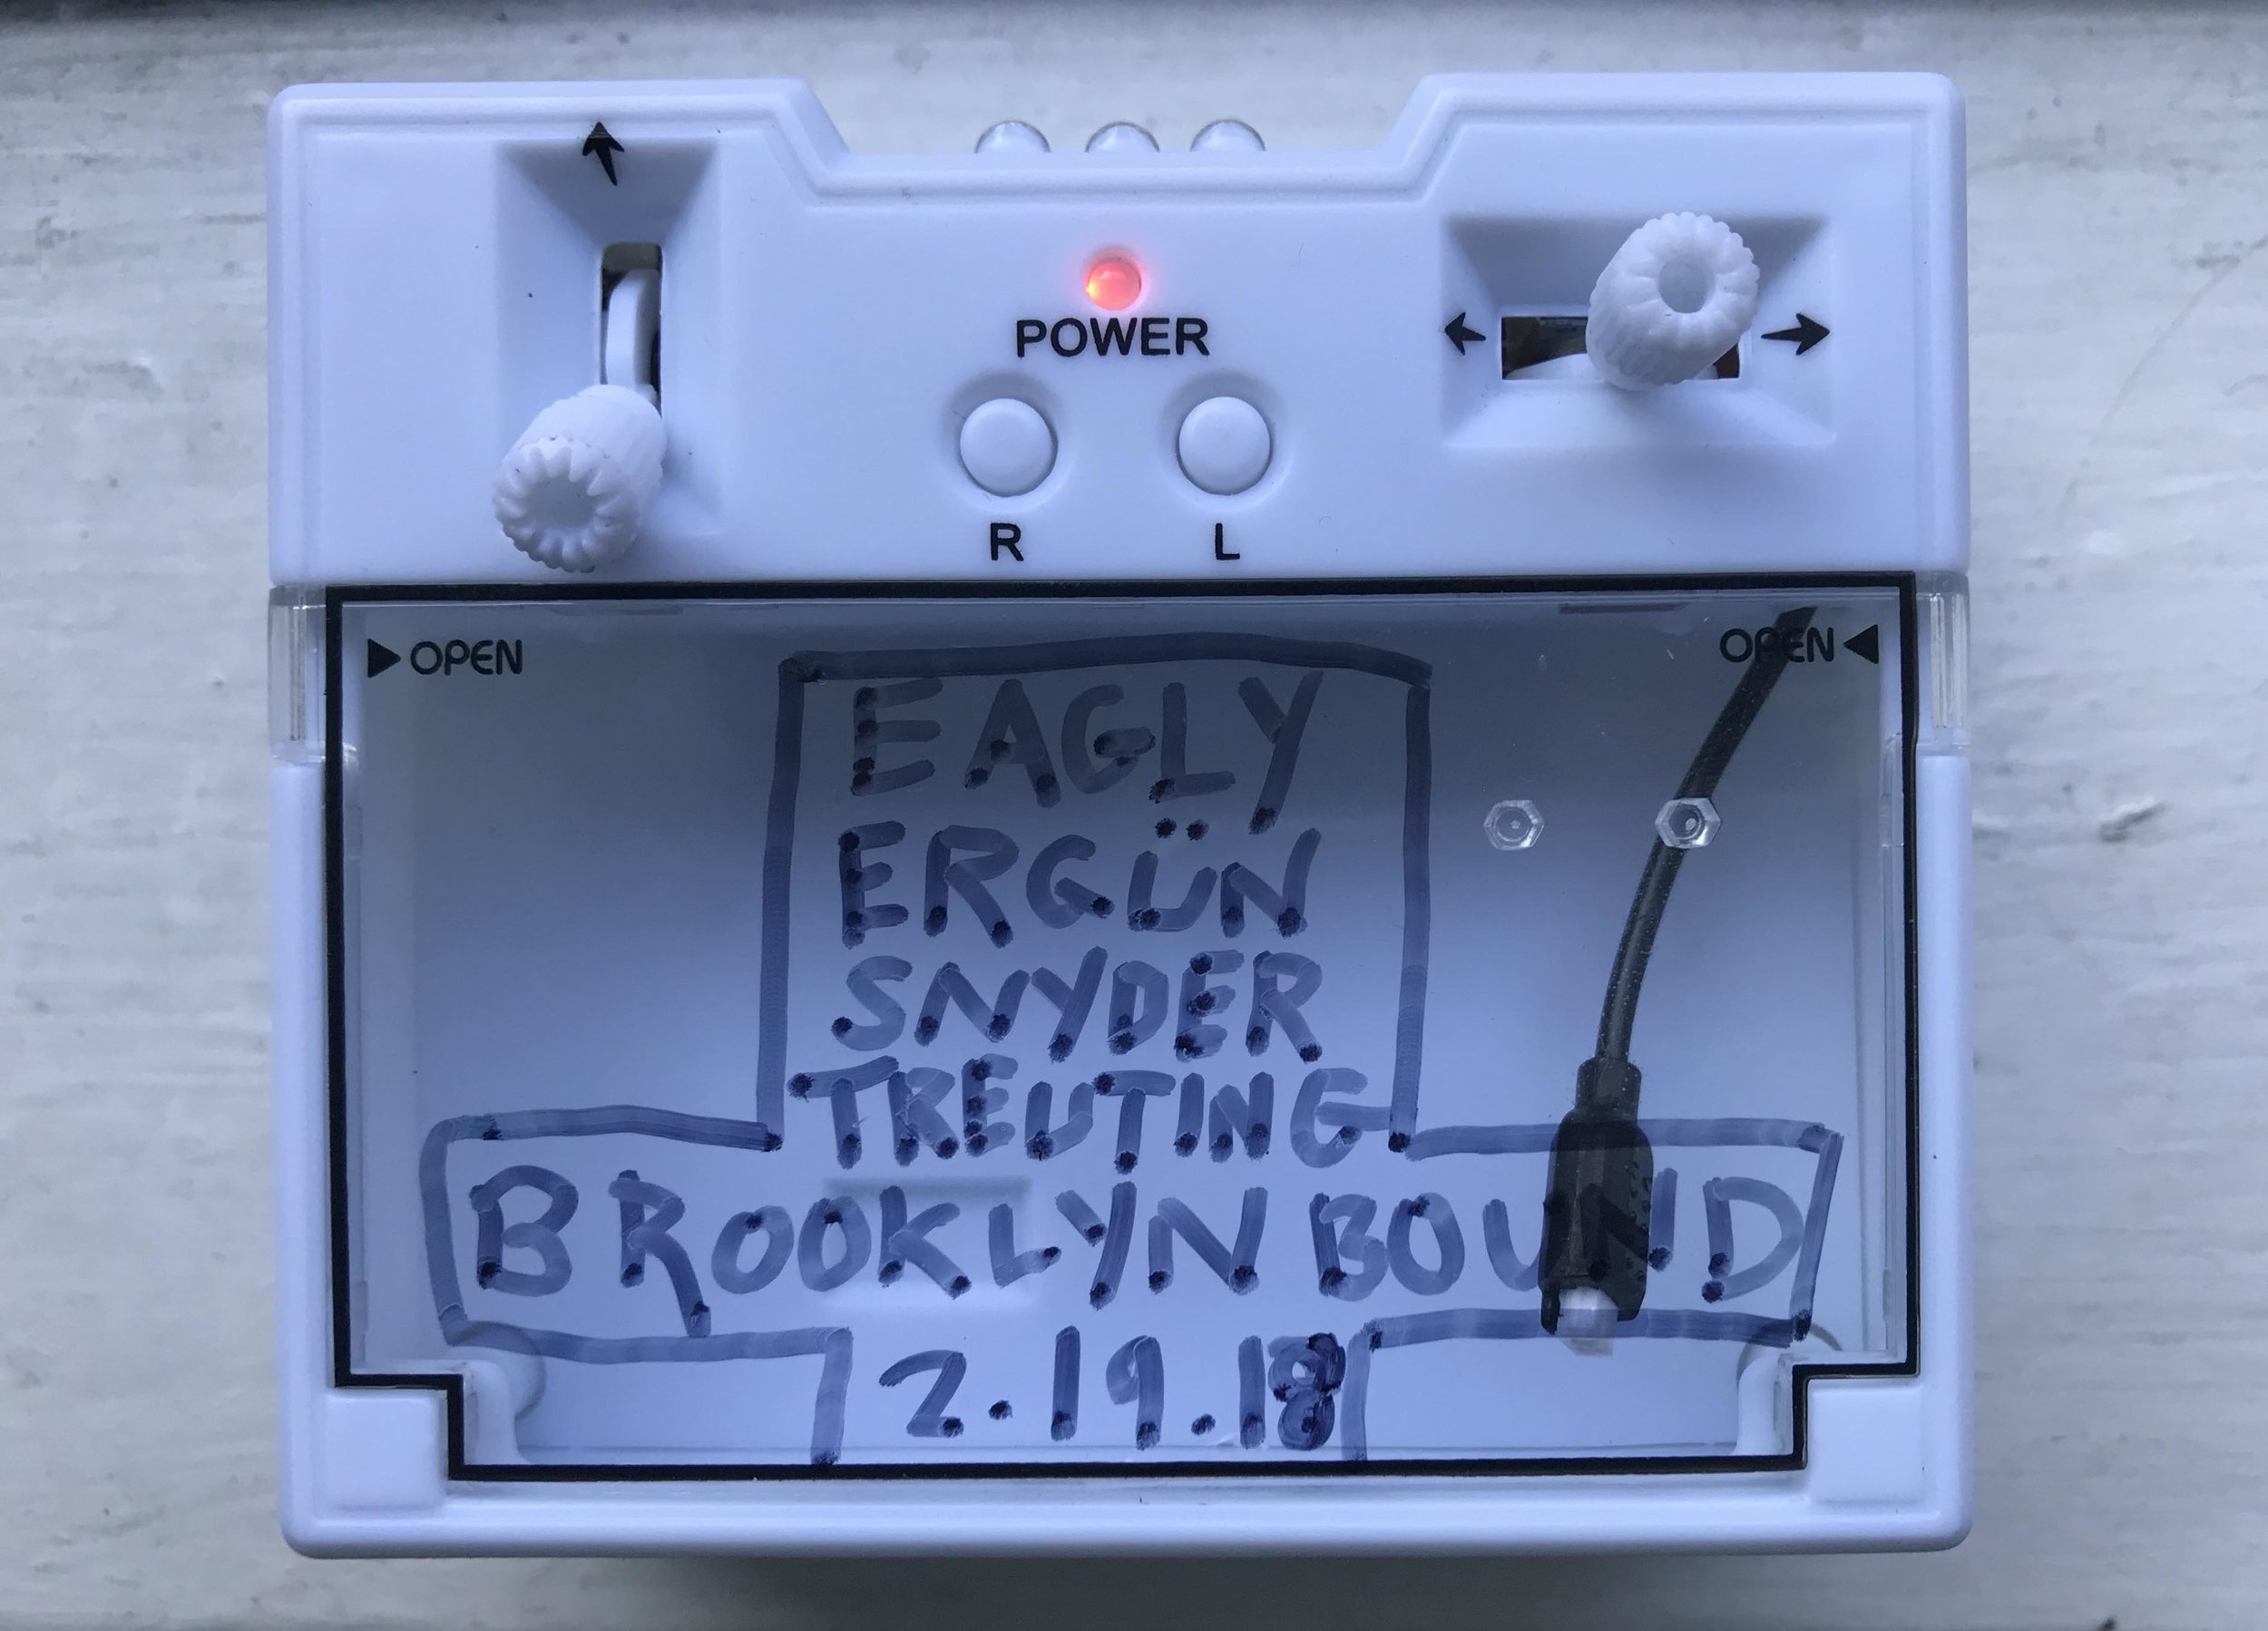 Eagly Ergun Snyder Treuting Brooklyn Bound.jpg